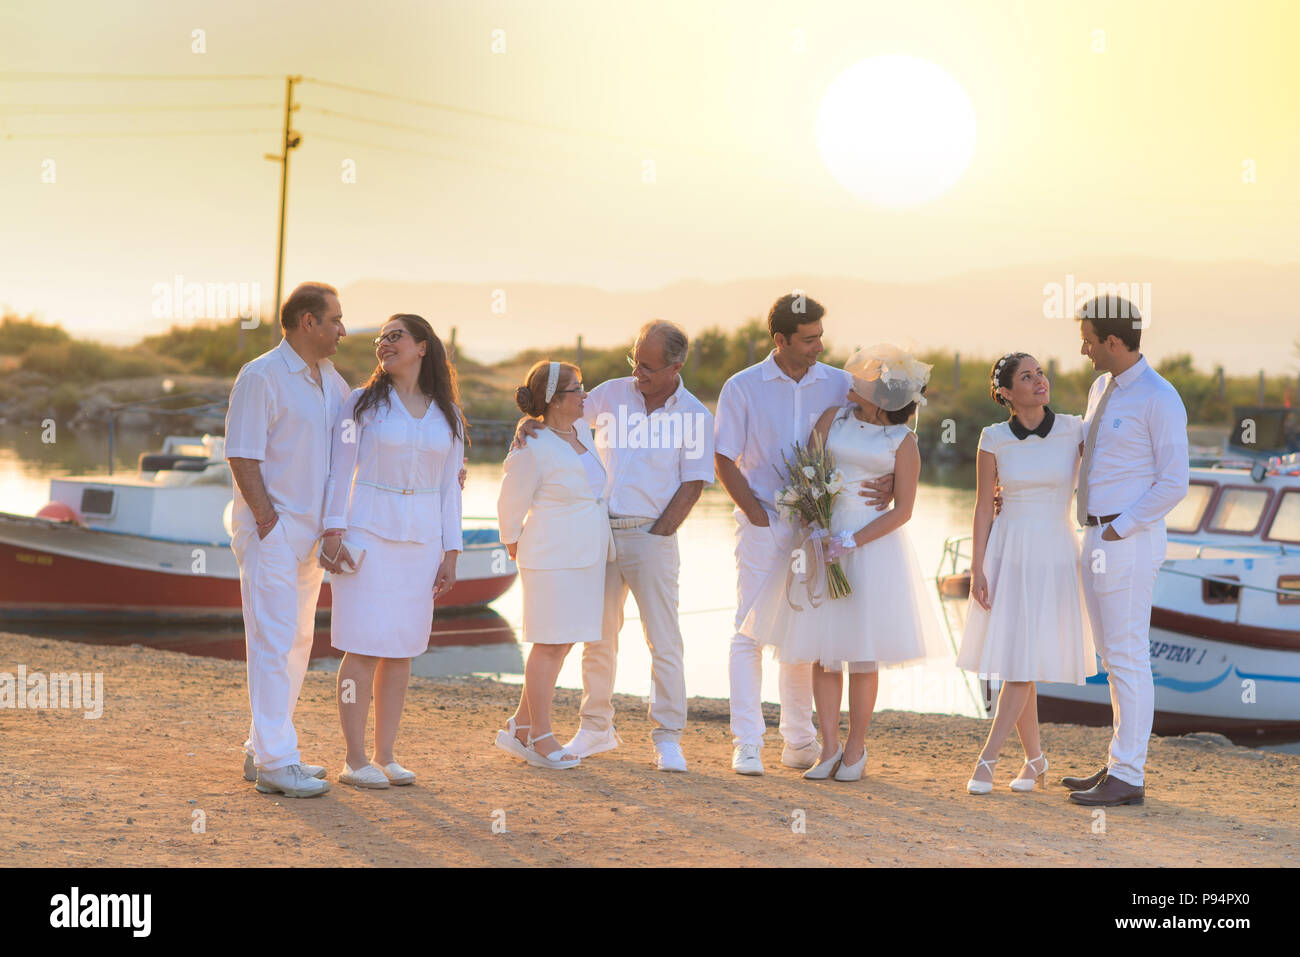 Wedding ceremony all family members attending wedding invitation, bride groom, father, father in law, mother in low, relatives - Stock Image